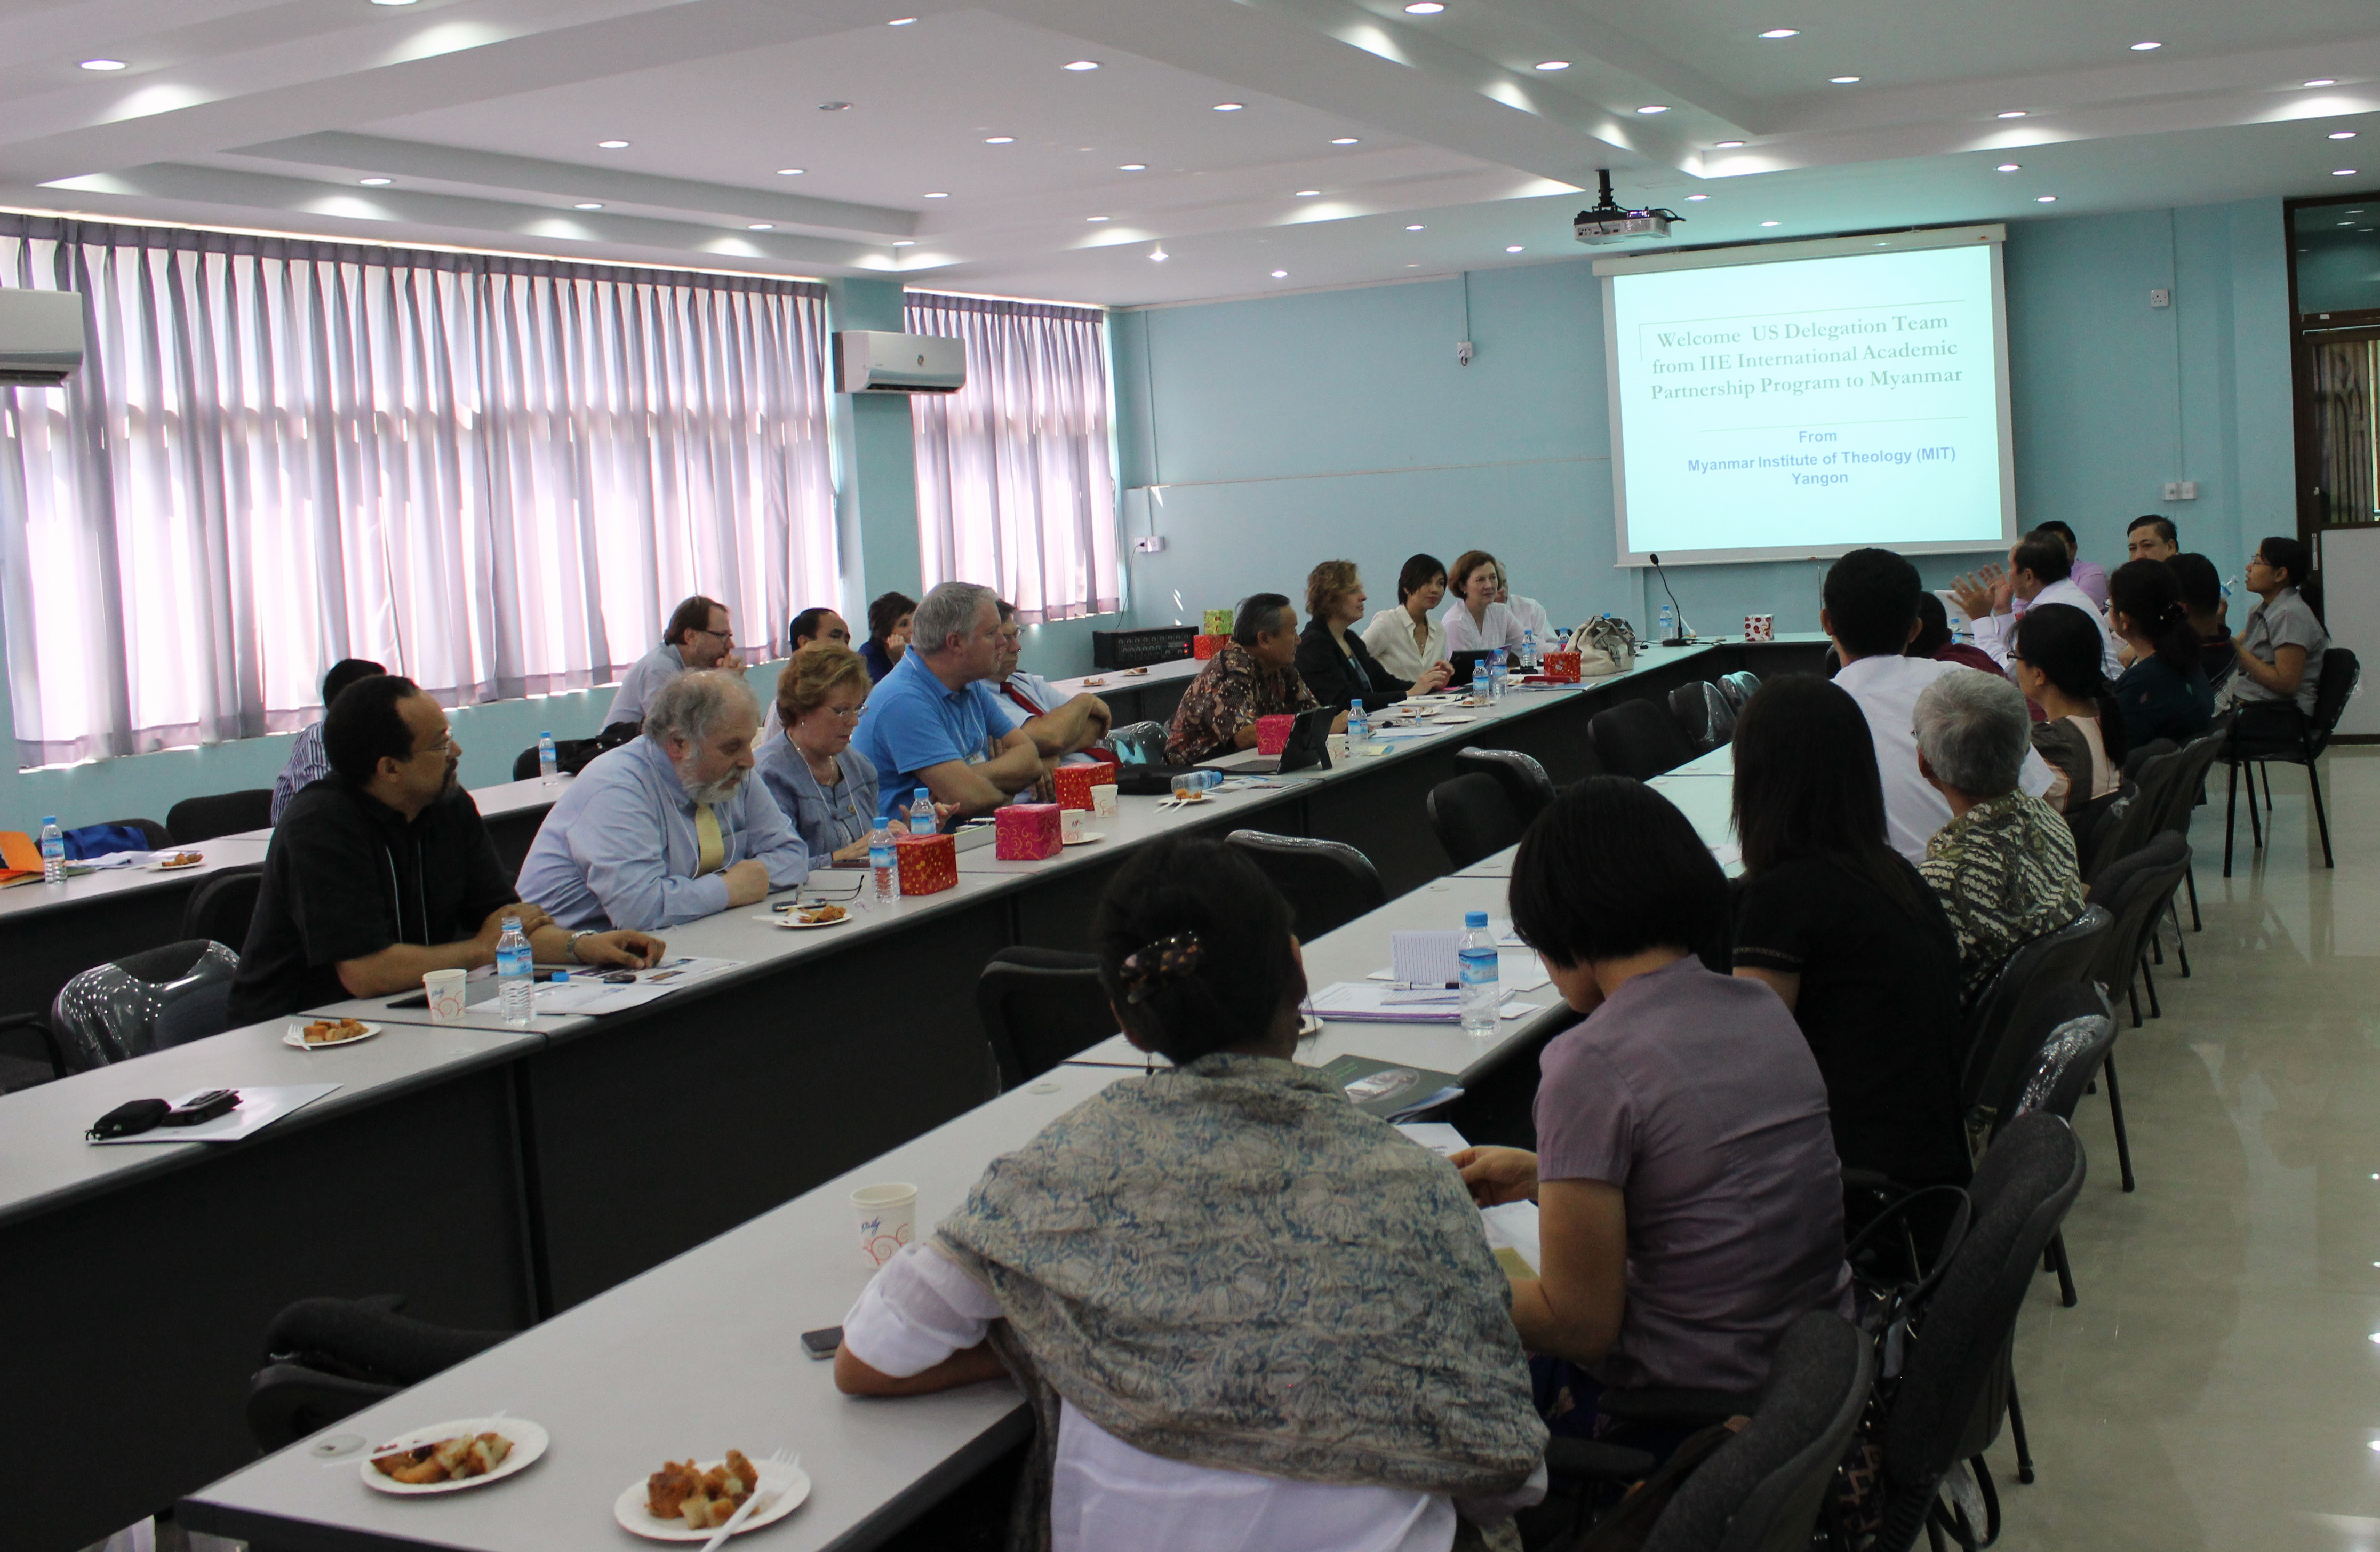 Dr. Cogburn presents during Myanmar visit in March 2013 (photo)